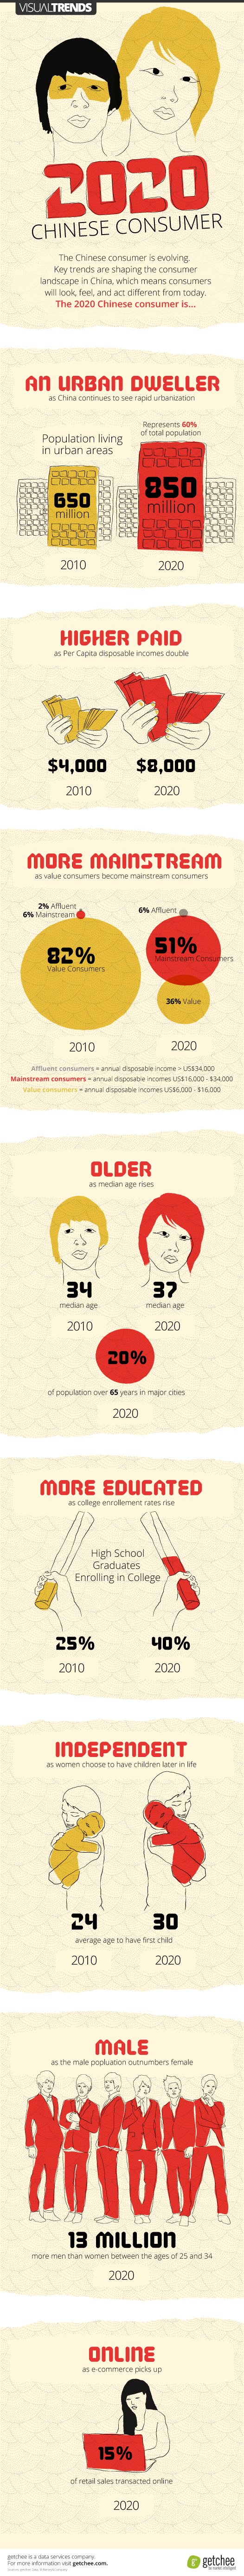 INFOGRAPHIC: The 2020 Chinese Consumer